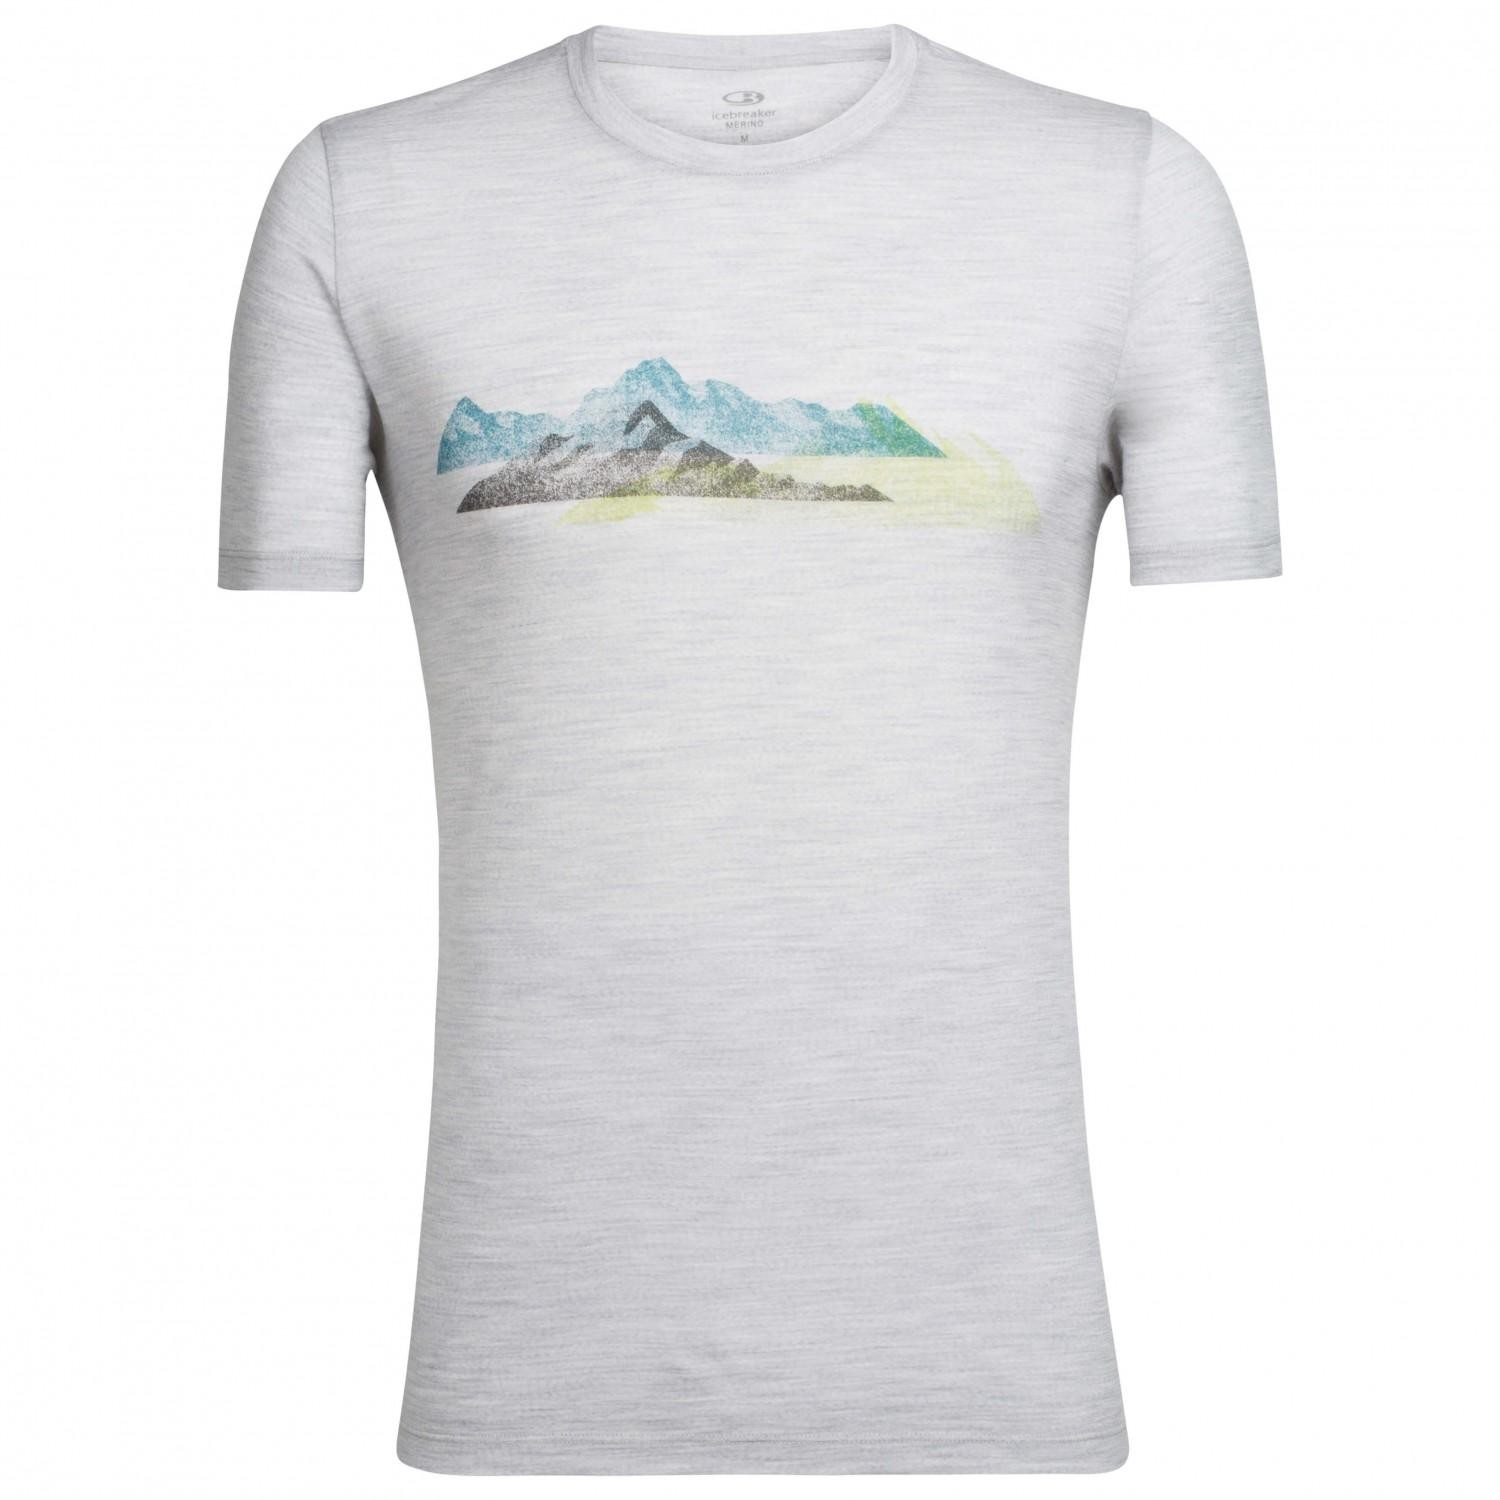 8eb18fcbe4b8e3 Tech Lite SS Crewe Misty Peaks Ms - Backpacker-Store